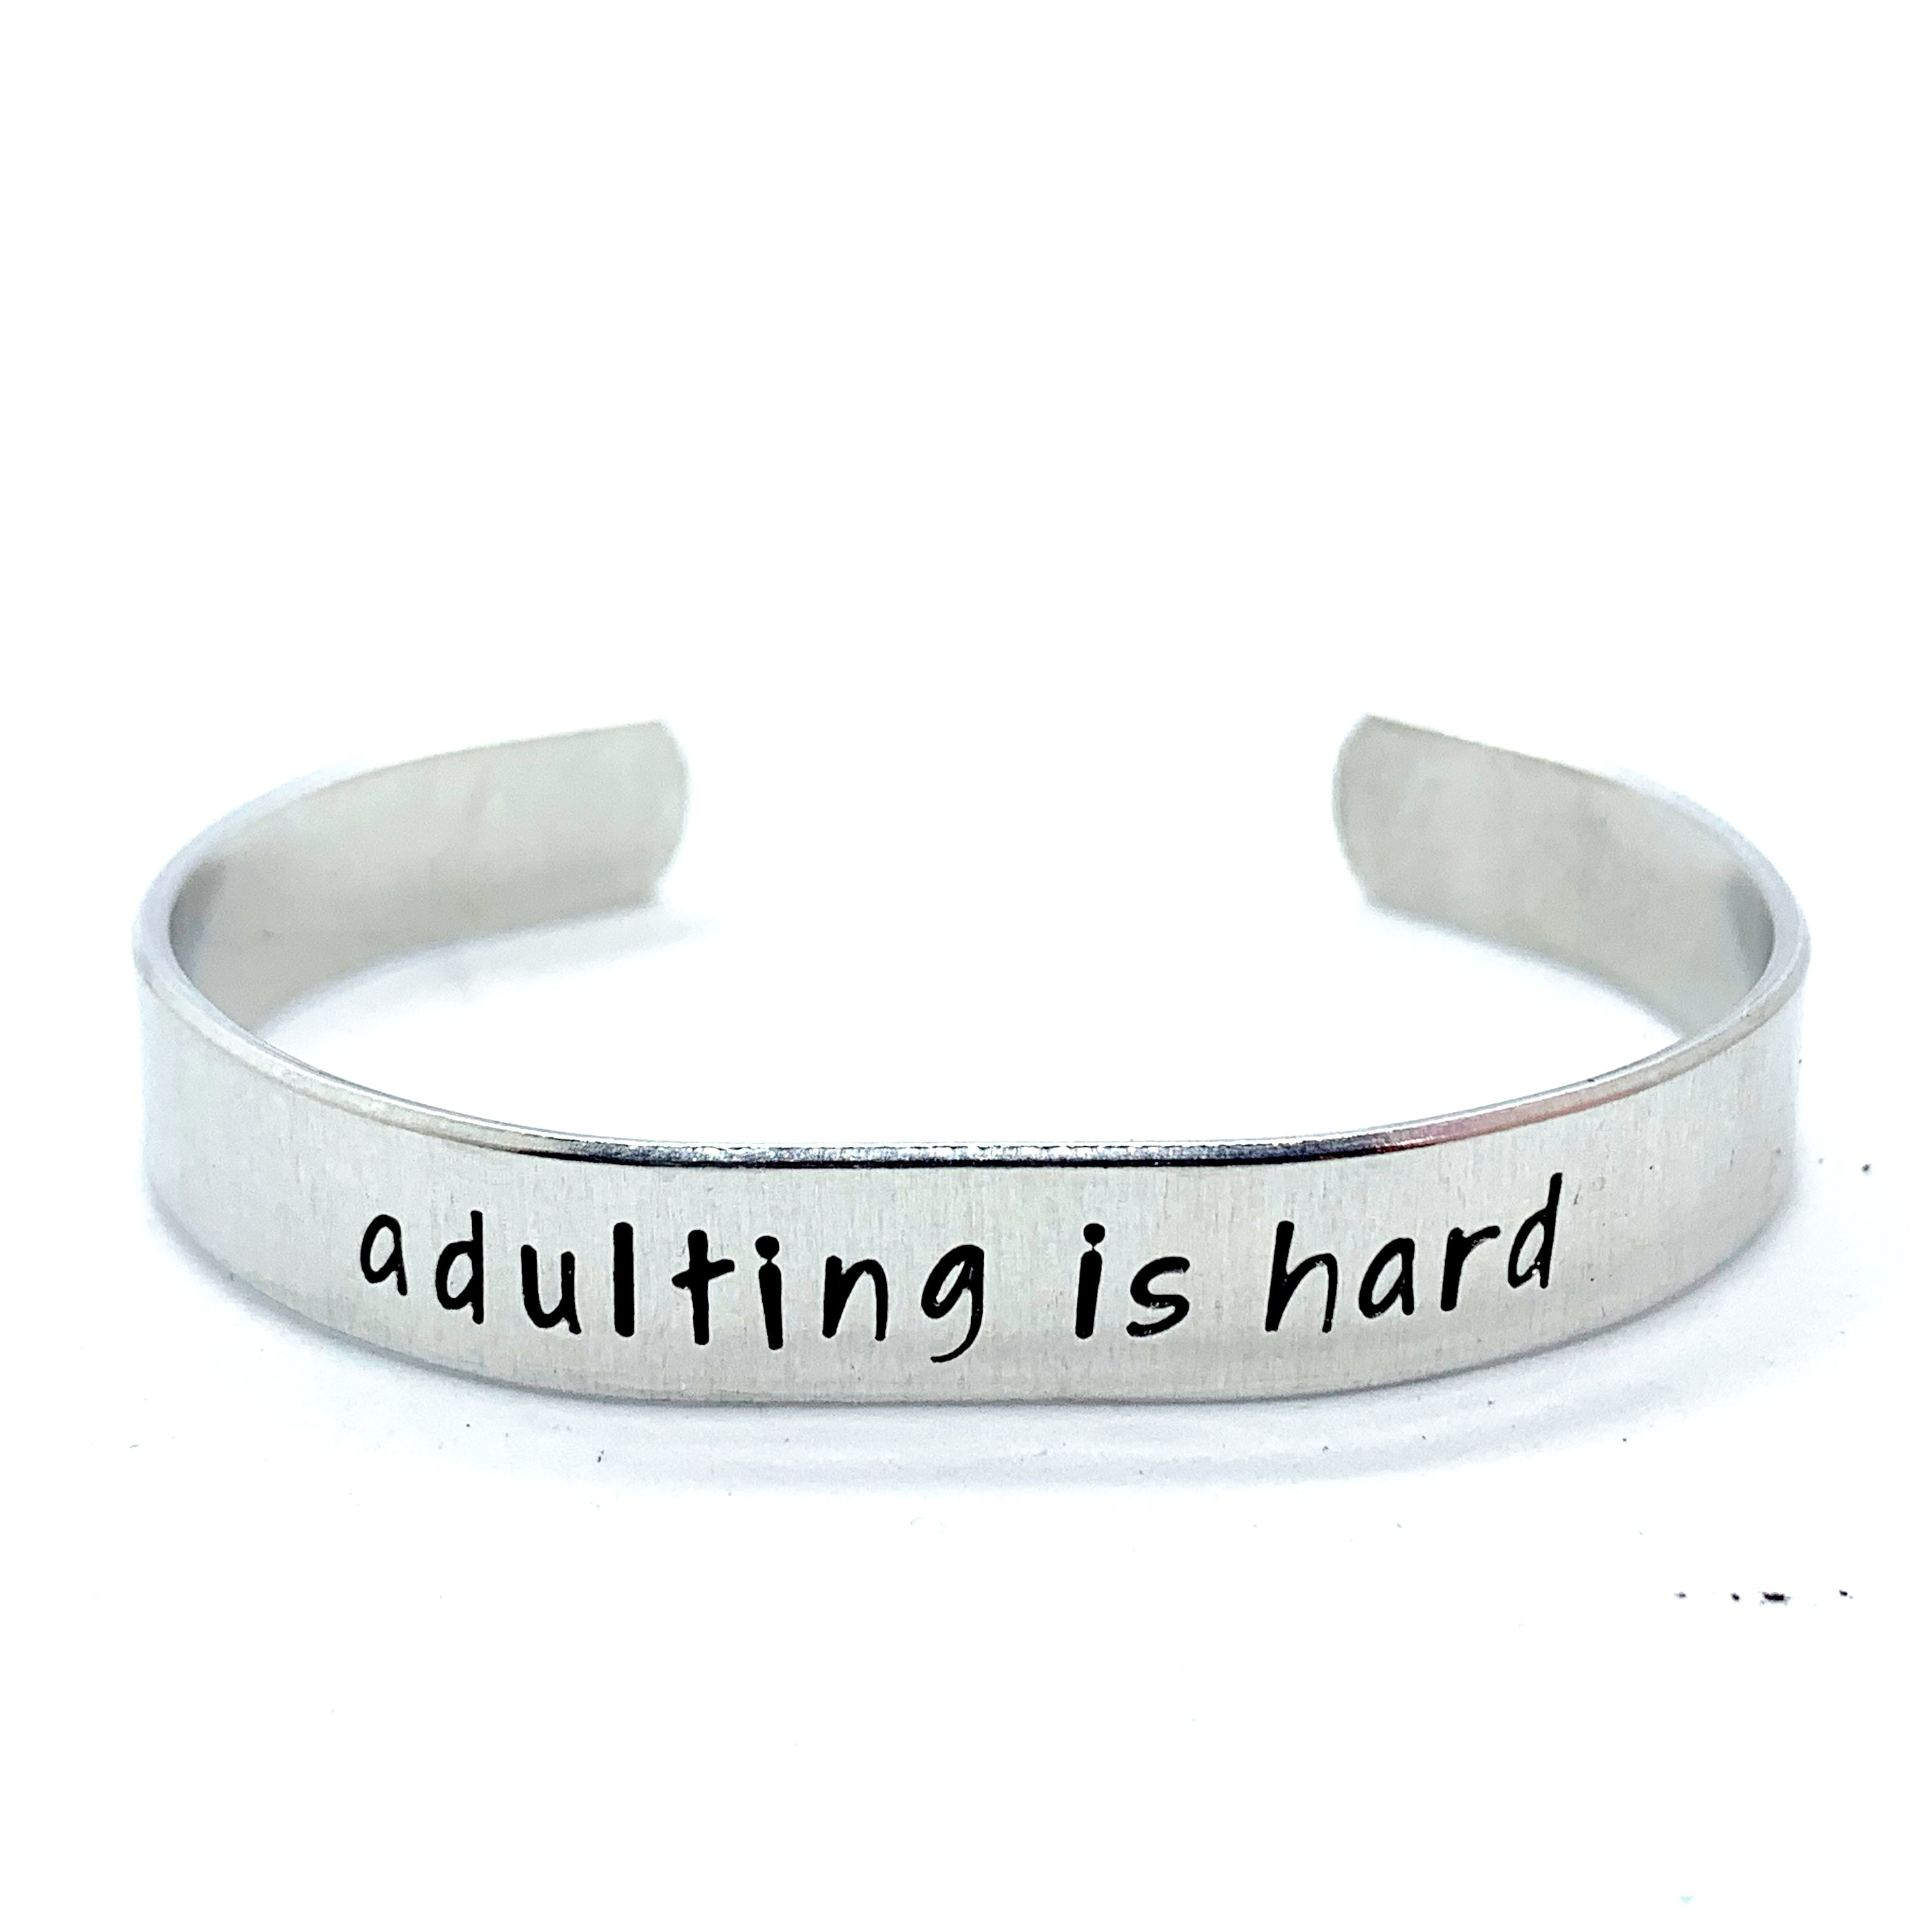 ⅜ inch Aluminum Cuff - Adulting Is Hard